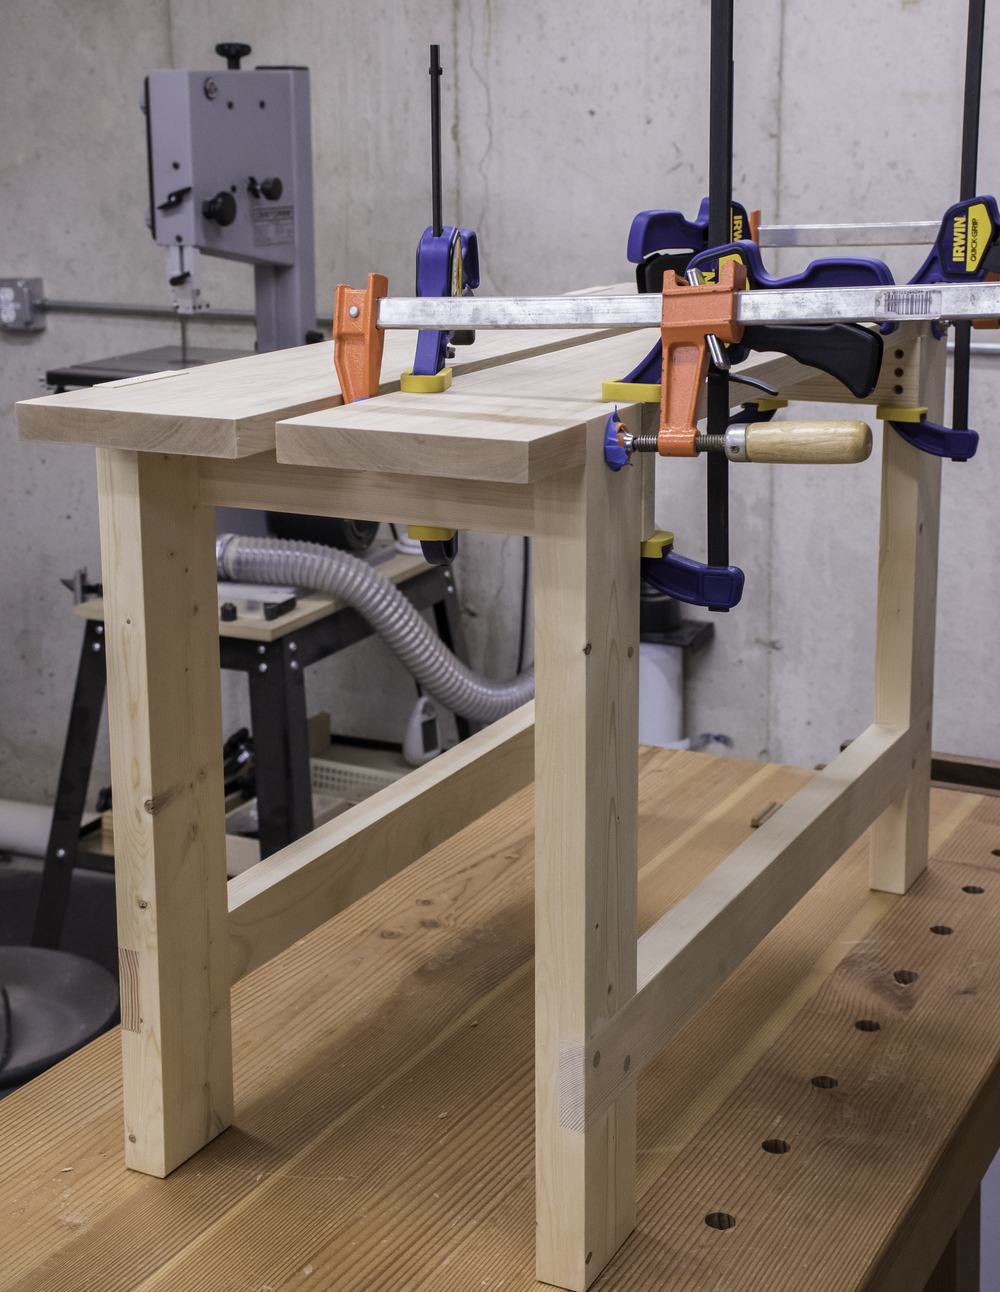 Gluing the top boards to the legs.